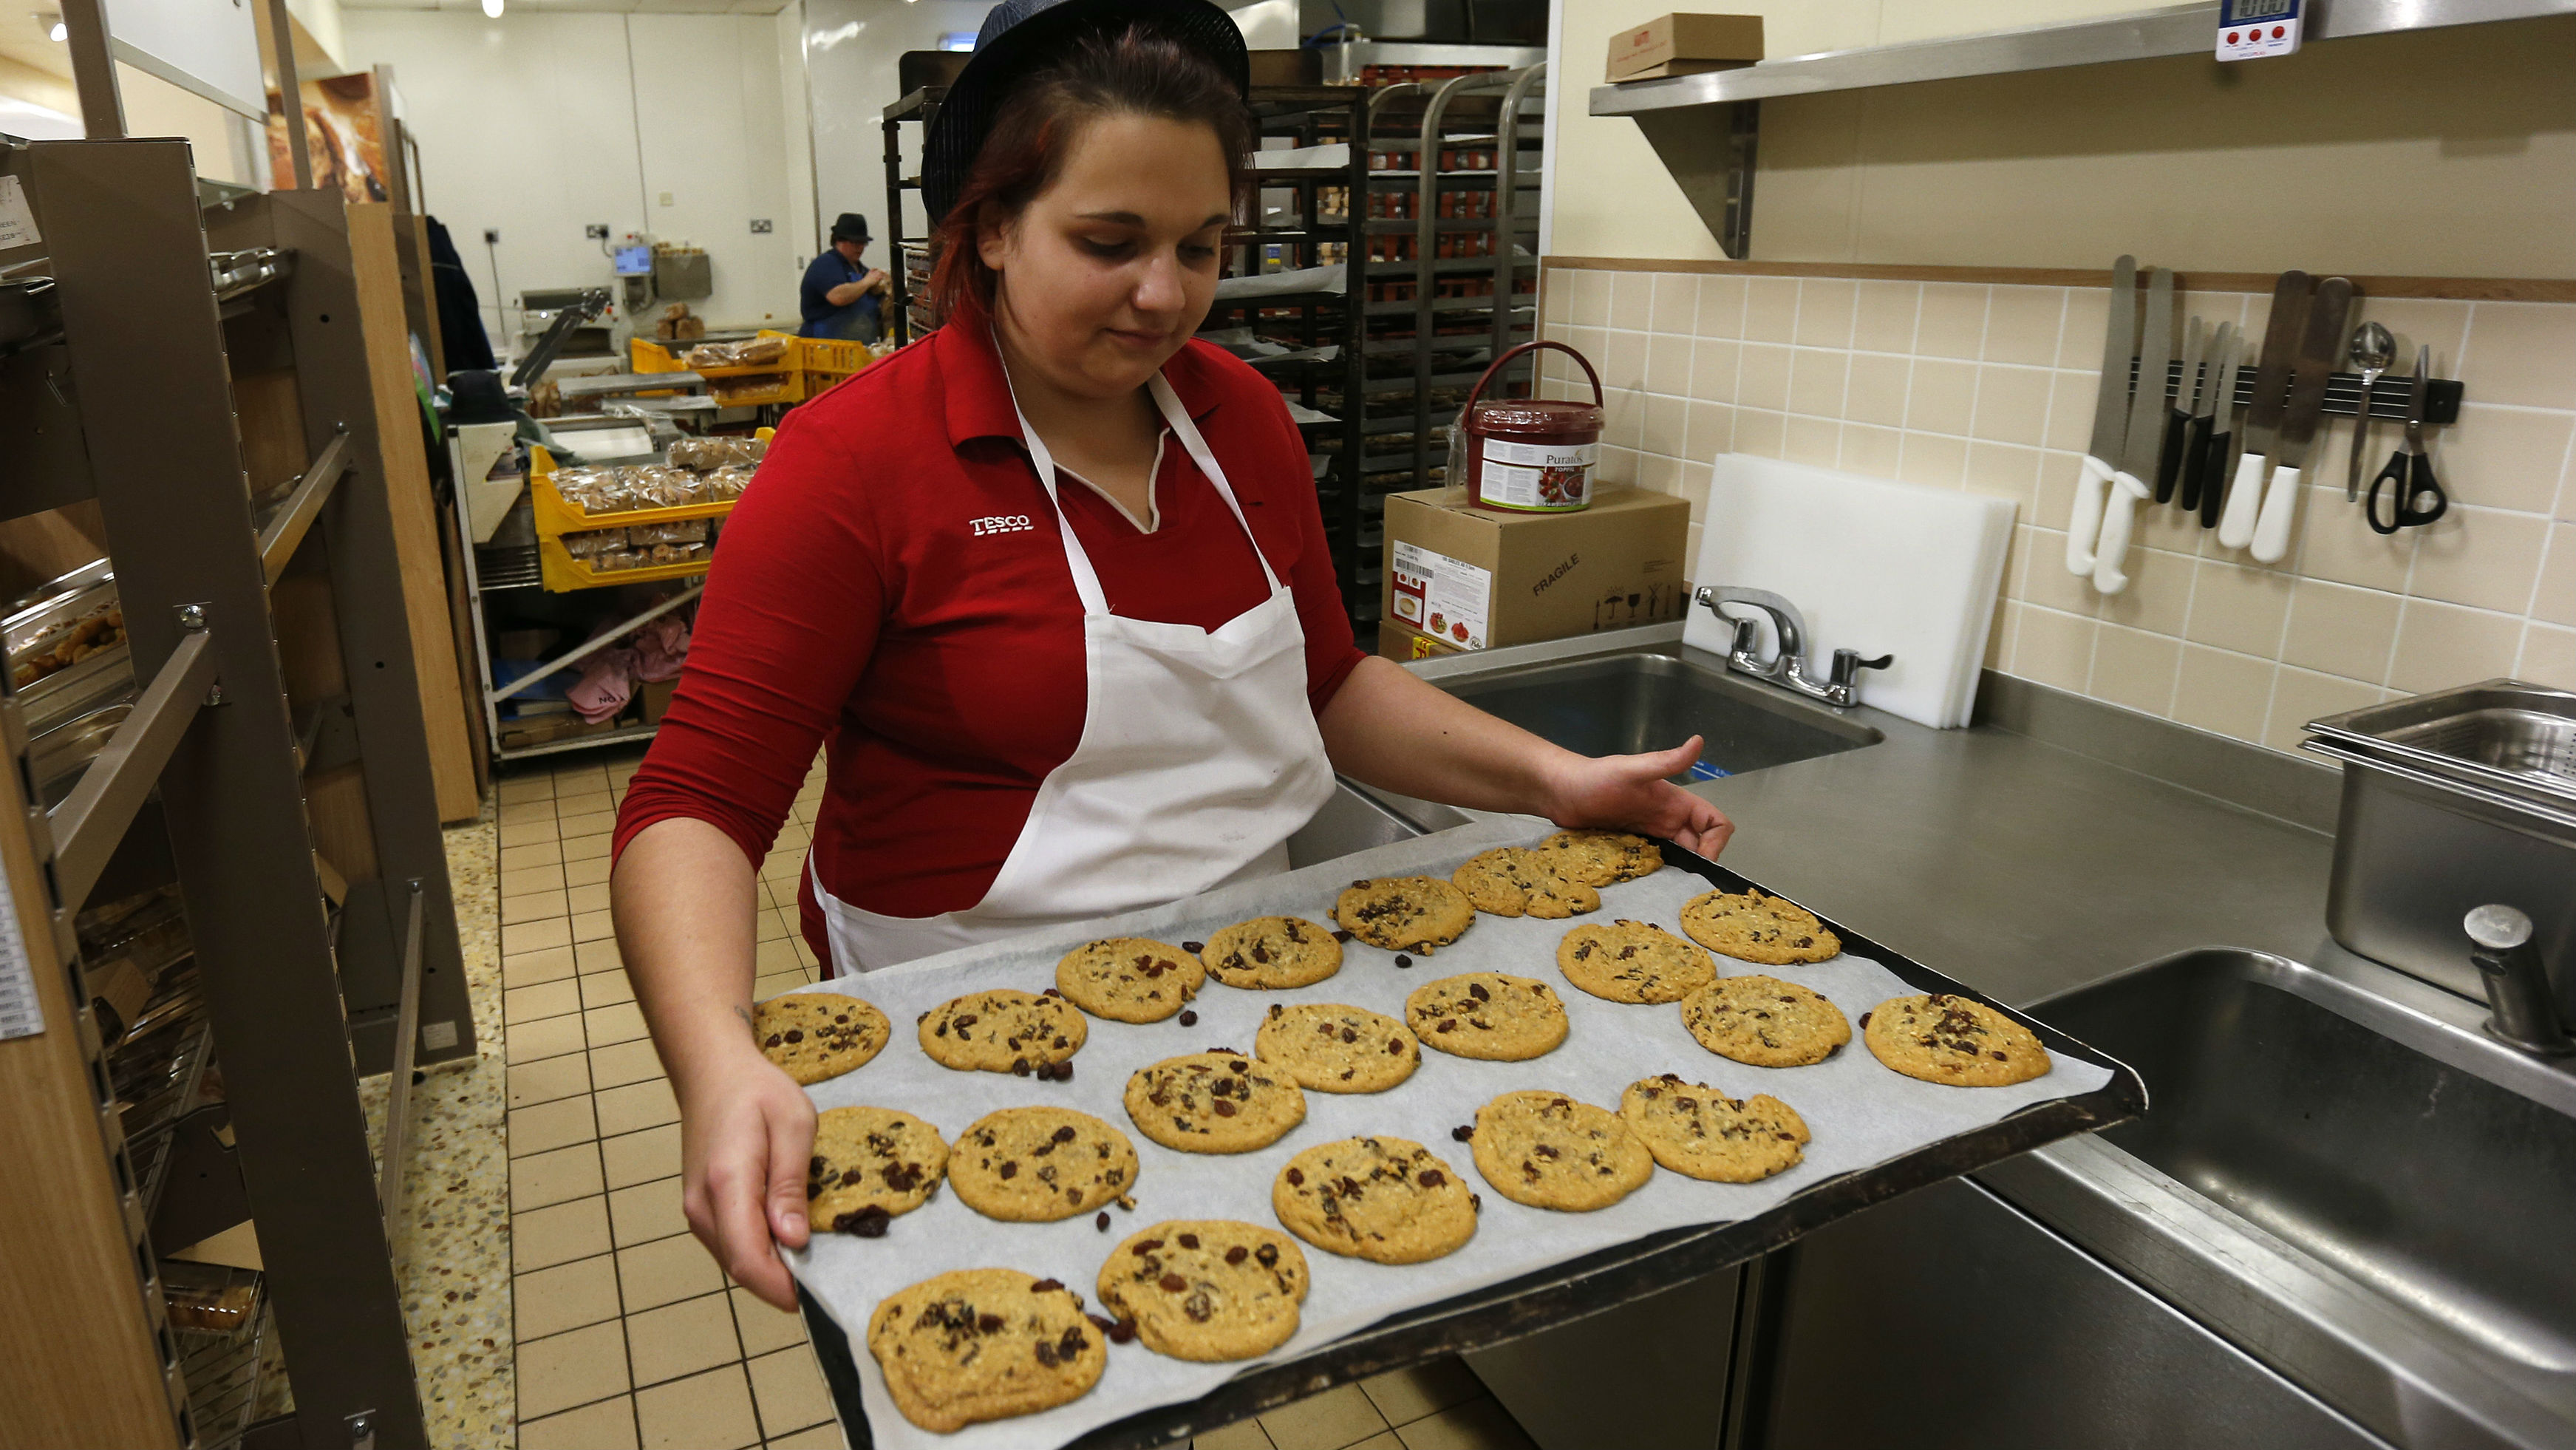 Tesco employee Jessica Francis carries a tray of chocolate chip cookies in the bakery at a Tesco shop in Bishop's Stortford, southern England November 26, 2012. Eight months ago Tesco Plc chief executive Phil Clarke set out a 1 billion pound ($1.6 billion) recovery plan to arrest the group's worrying loss of market share. How well it's working may start to emerge next week. Picture taken November 26, 2012.